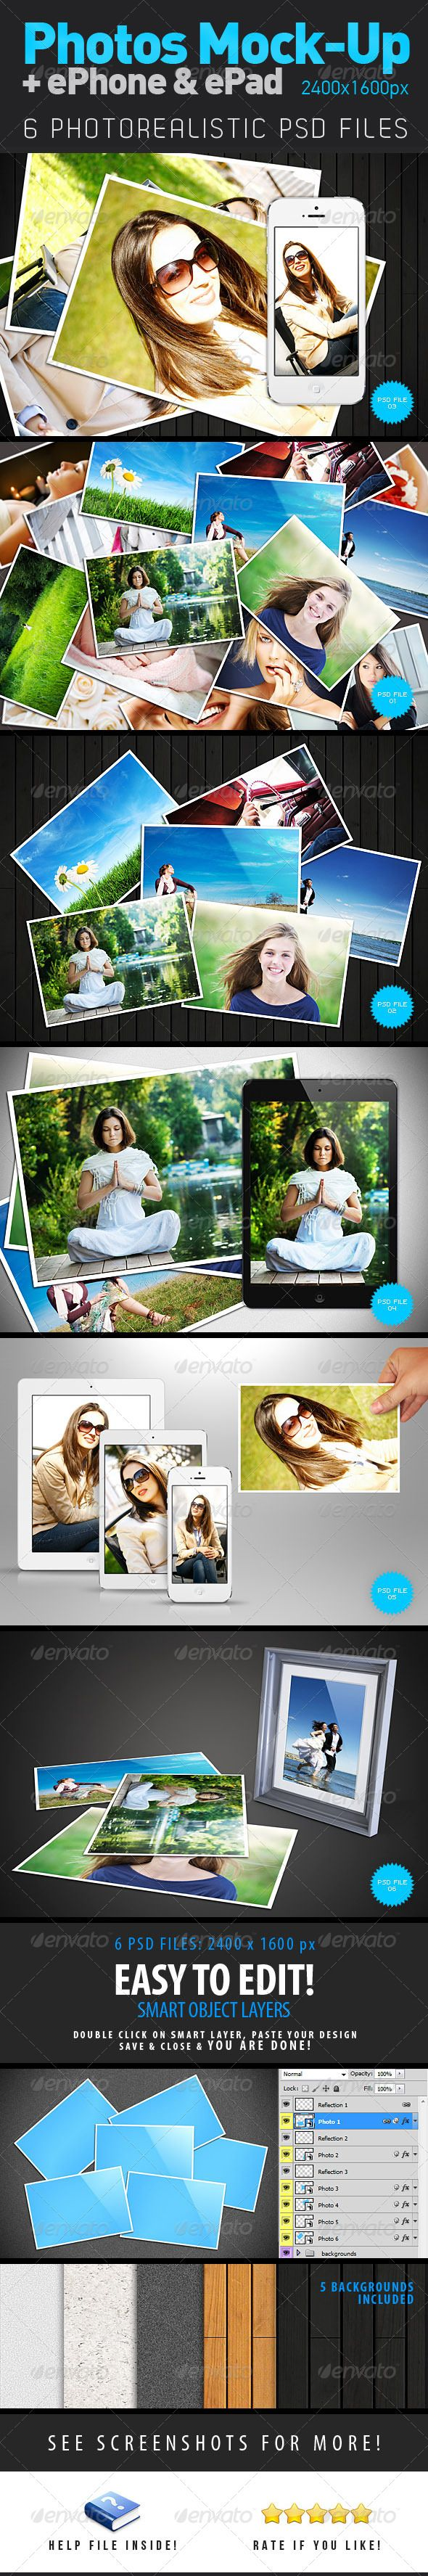 """Photos + ePhone + ePad Mock-Up  #GraphicRiver        Photos and new ePhone + ePad mini Mock-Up   6 Photorealistic PSD files with 10 MOCK-UPs! Easy to edit with smart layers! 5 Backgrounds included.   Use this concept for printed and digital images! Concept slogan: """"Print your digital photos from trips, parties, events, etc.""""   Help file included! PLEASE RATE & SUPPORT!                                                                       Created: 25March13 GraphicsFilesIncluded…"""